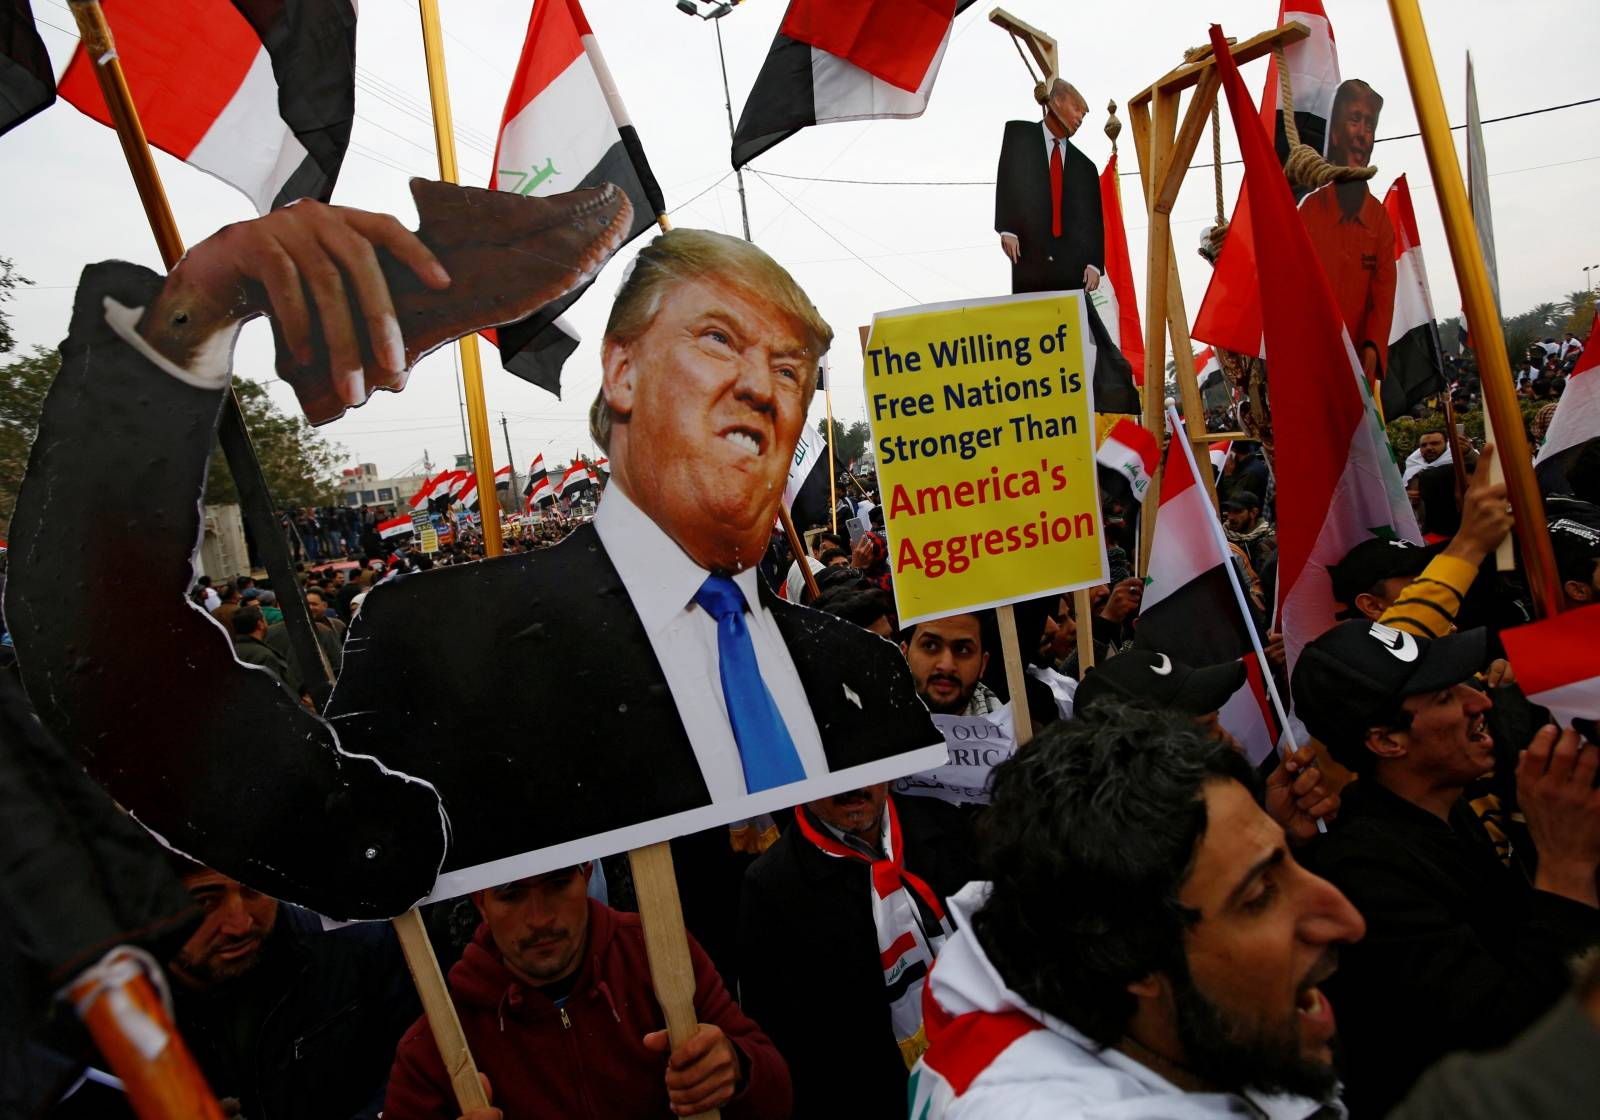 Supporters of Iraqi Shi'ite cleric Moqtada al-Sadr carry placards depicting U.S. President Donald Trump at a protest against what they say is U.S. presence and violations in Iraq, duri in Baghdad